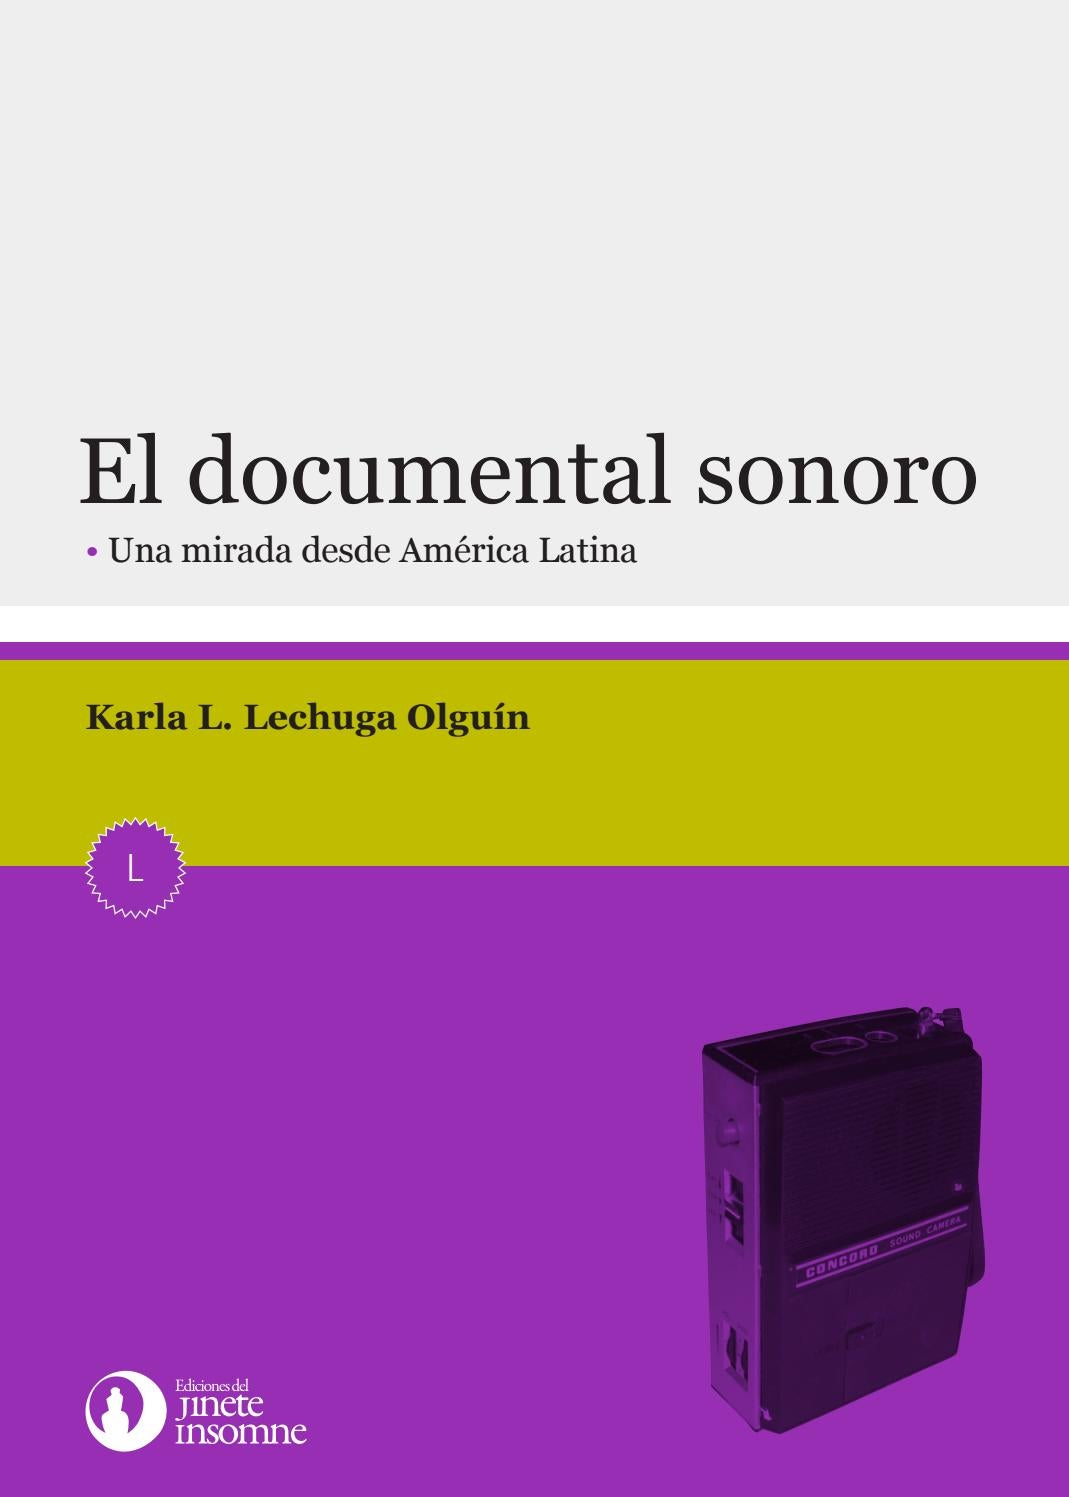 El documental sonoro. Una mirada desde América Latina. by Editorial Jinete  Insomne - issuu 1b94ab12d36